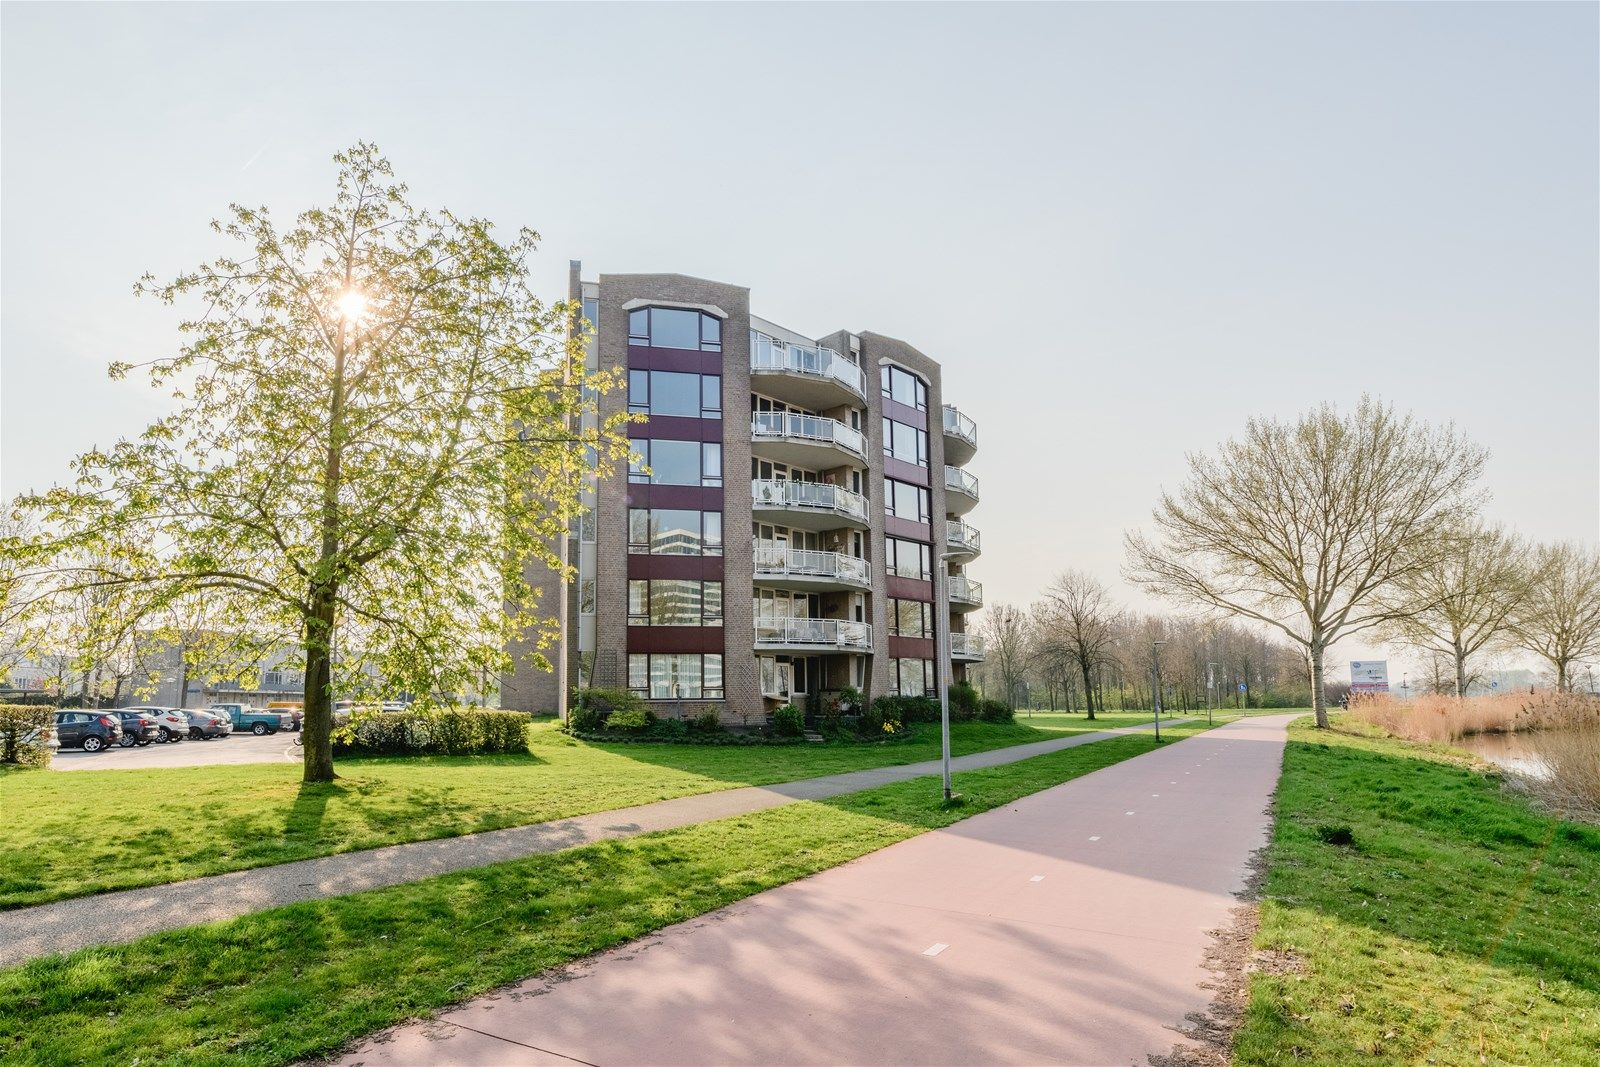 James Stewartstraat 14, Almere